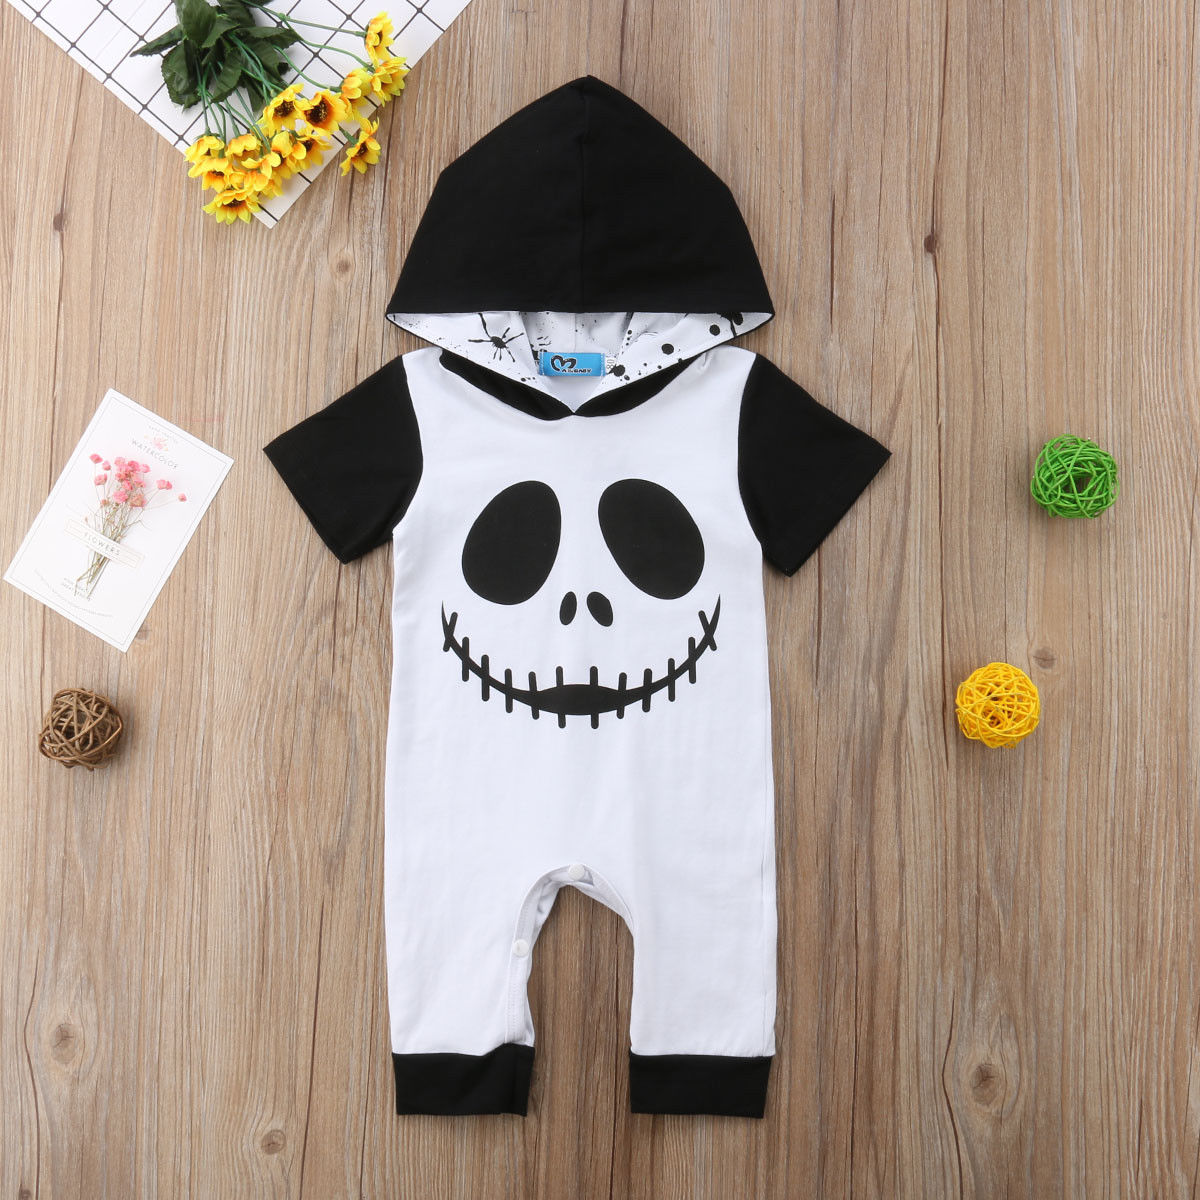 Newborn Halloween Costume Baby Clothes Ghost Print Girls&Boys Hooded Baby Rompers Jumpsuit Outfits Autumn New Born Baby Clothes